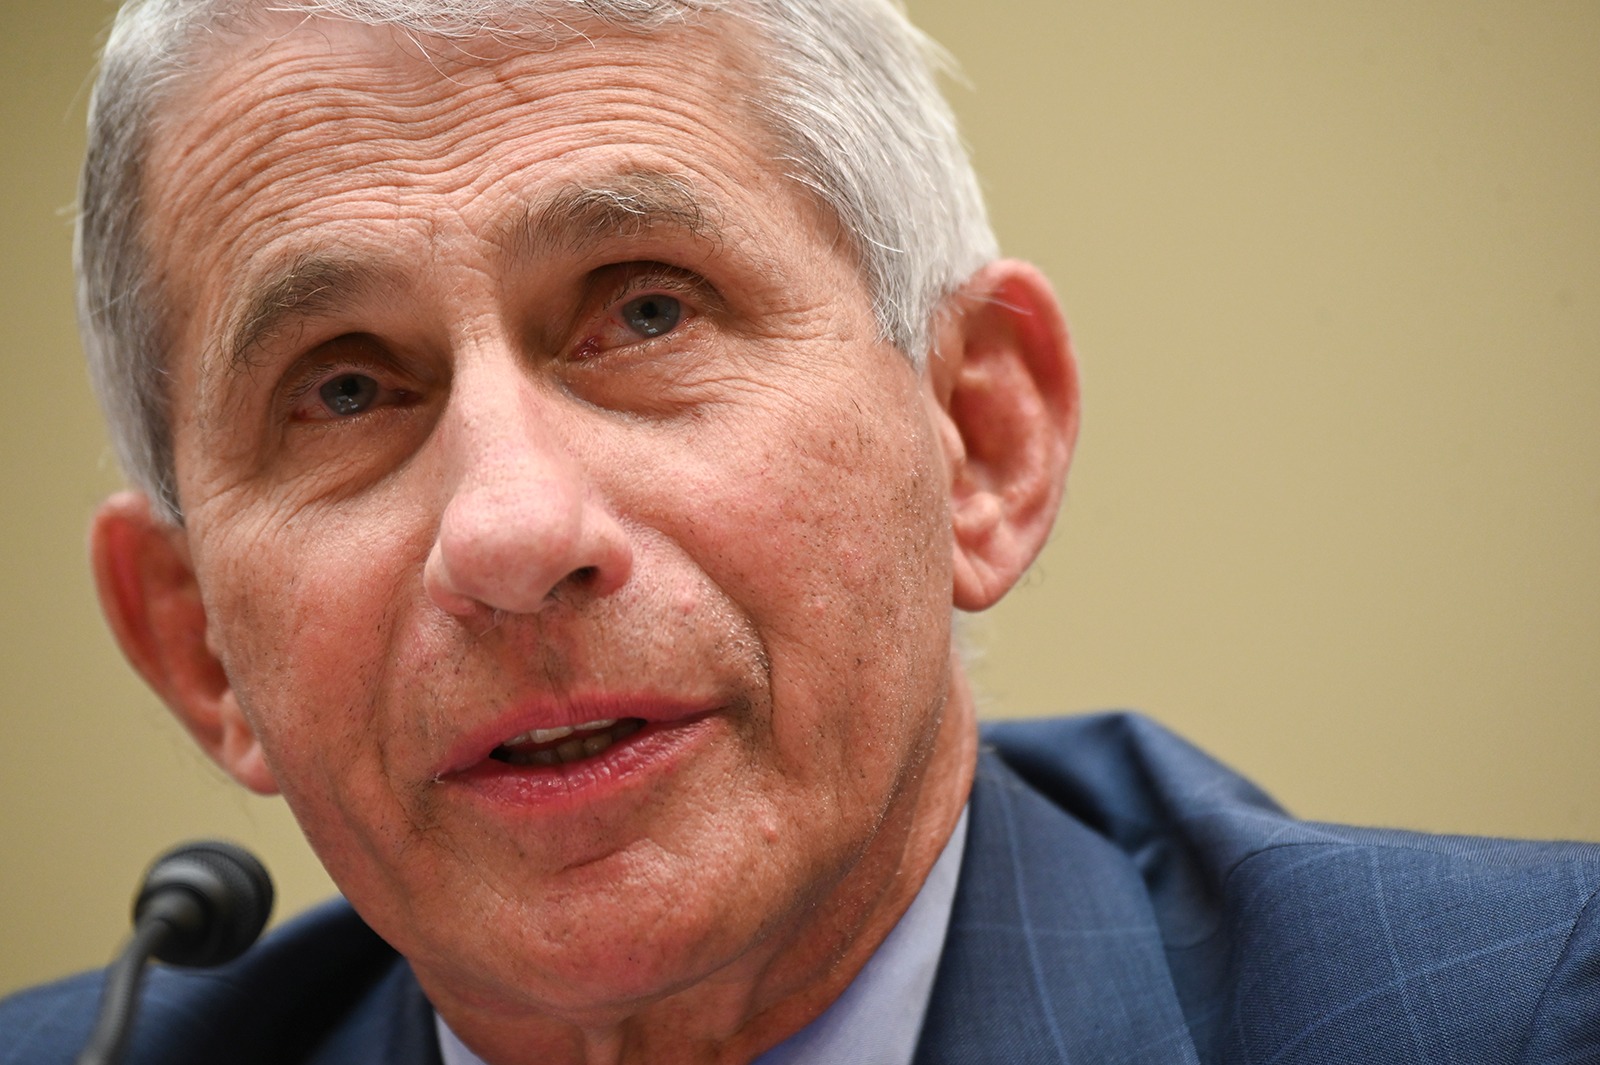 Dr. Anthony Fauci, director of the National Institute of Allergy and Infectious Diseases, testifies during a House Select Subcommittee on the Coronavirus Crisis hearing in Washington, DC on July 31.